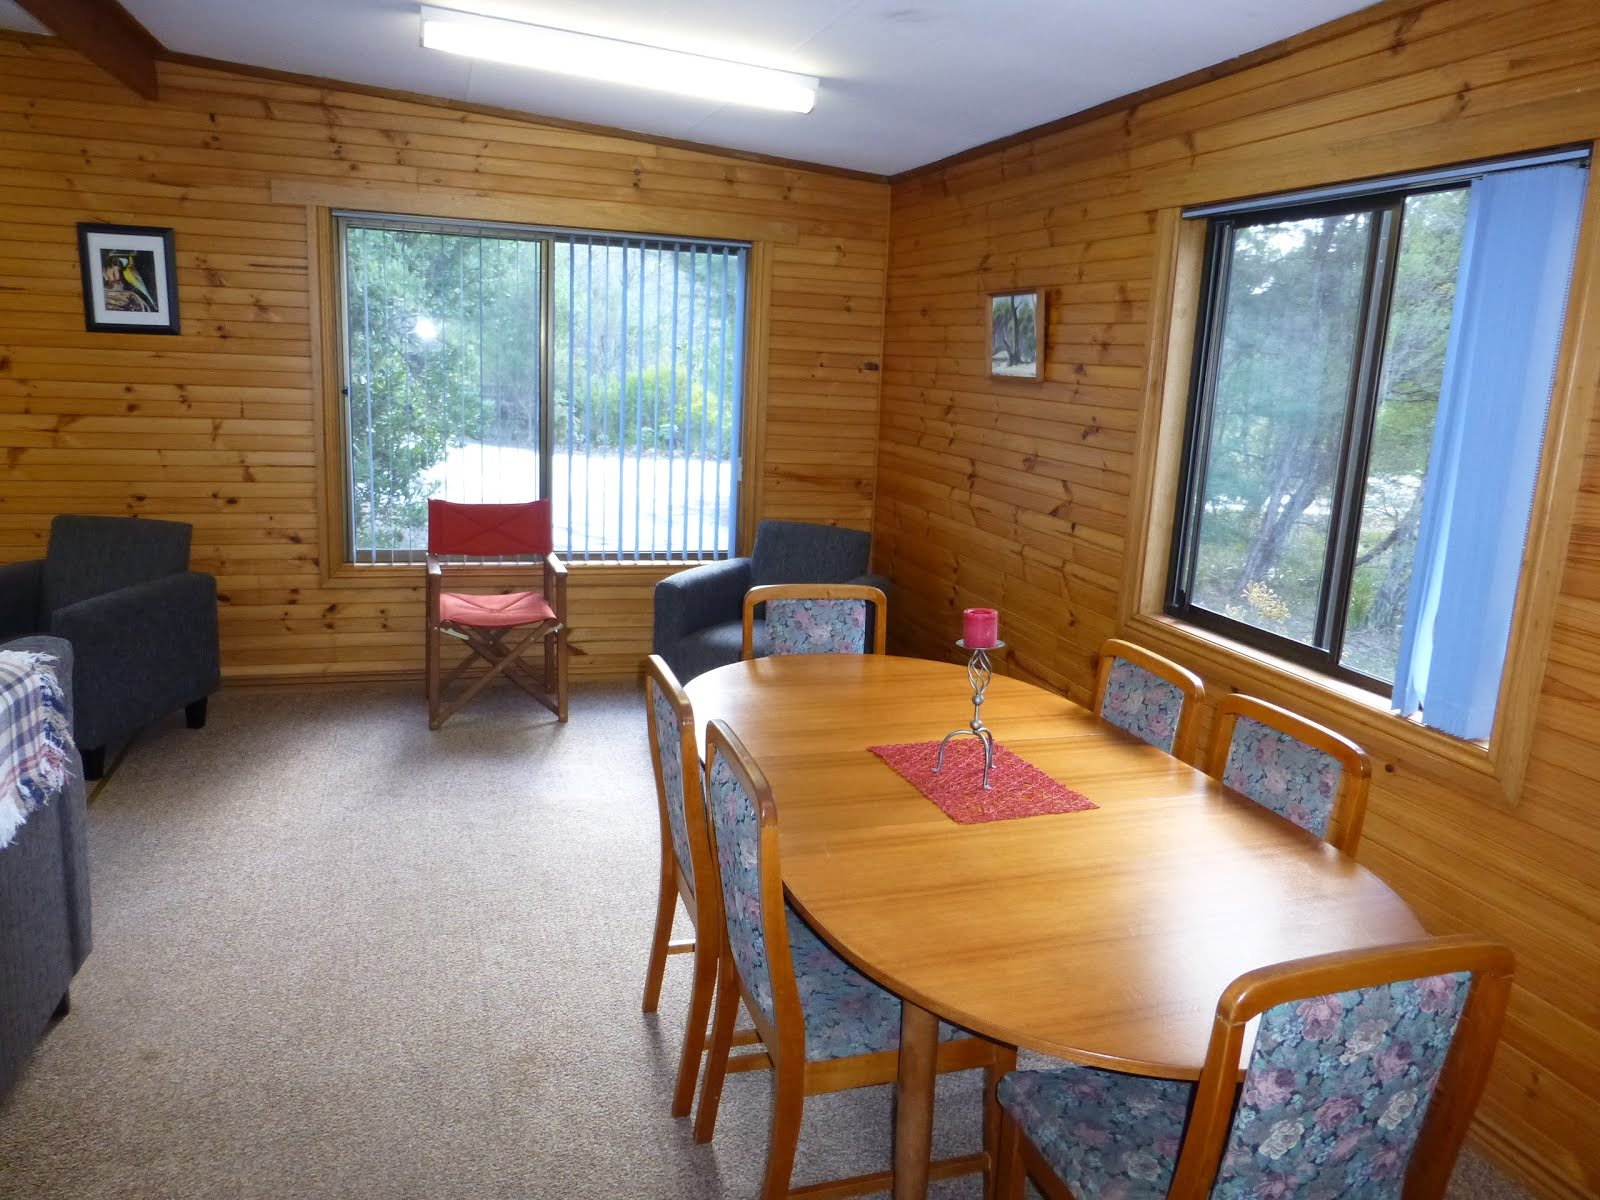 Banksia Cottage at Eagles Rise, Sisters Beach, Tasmania